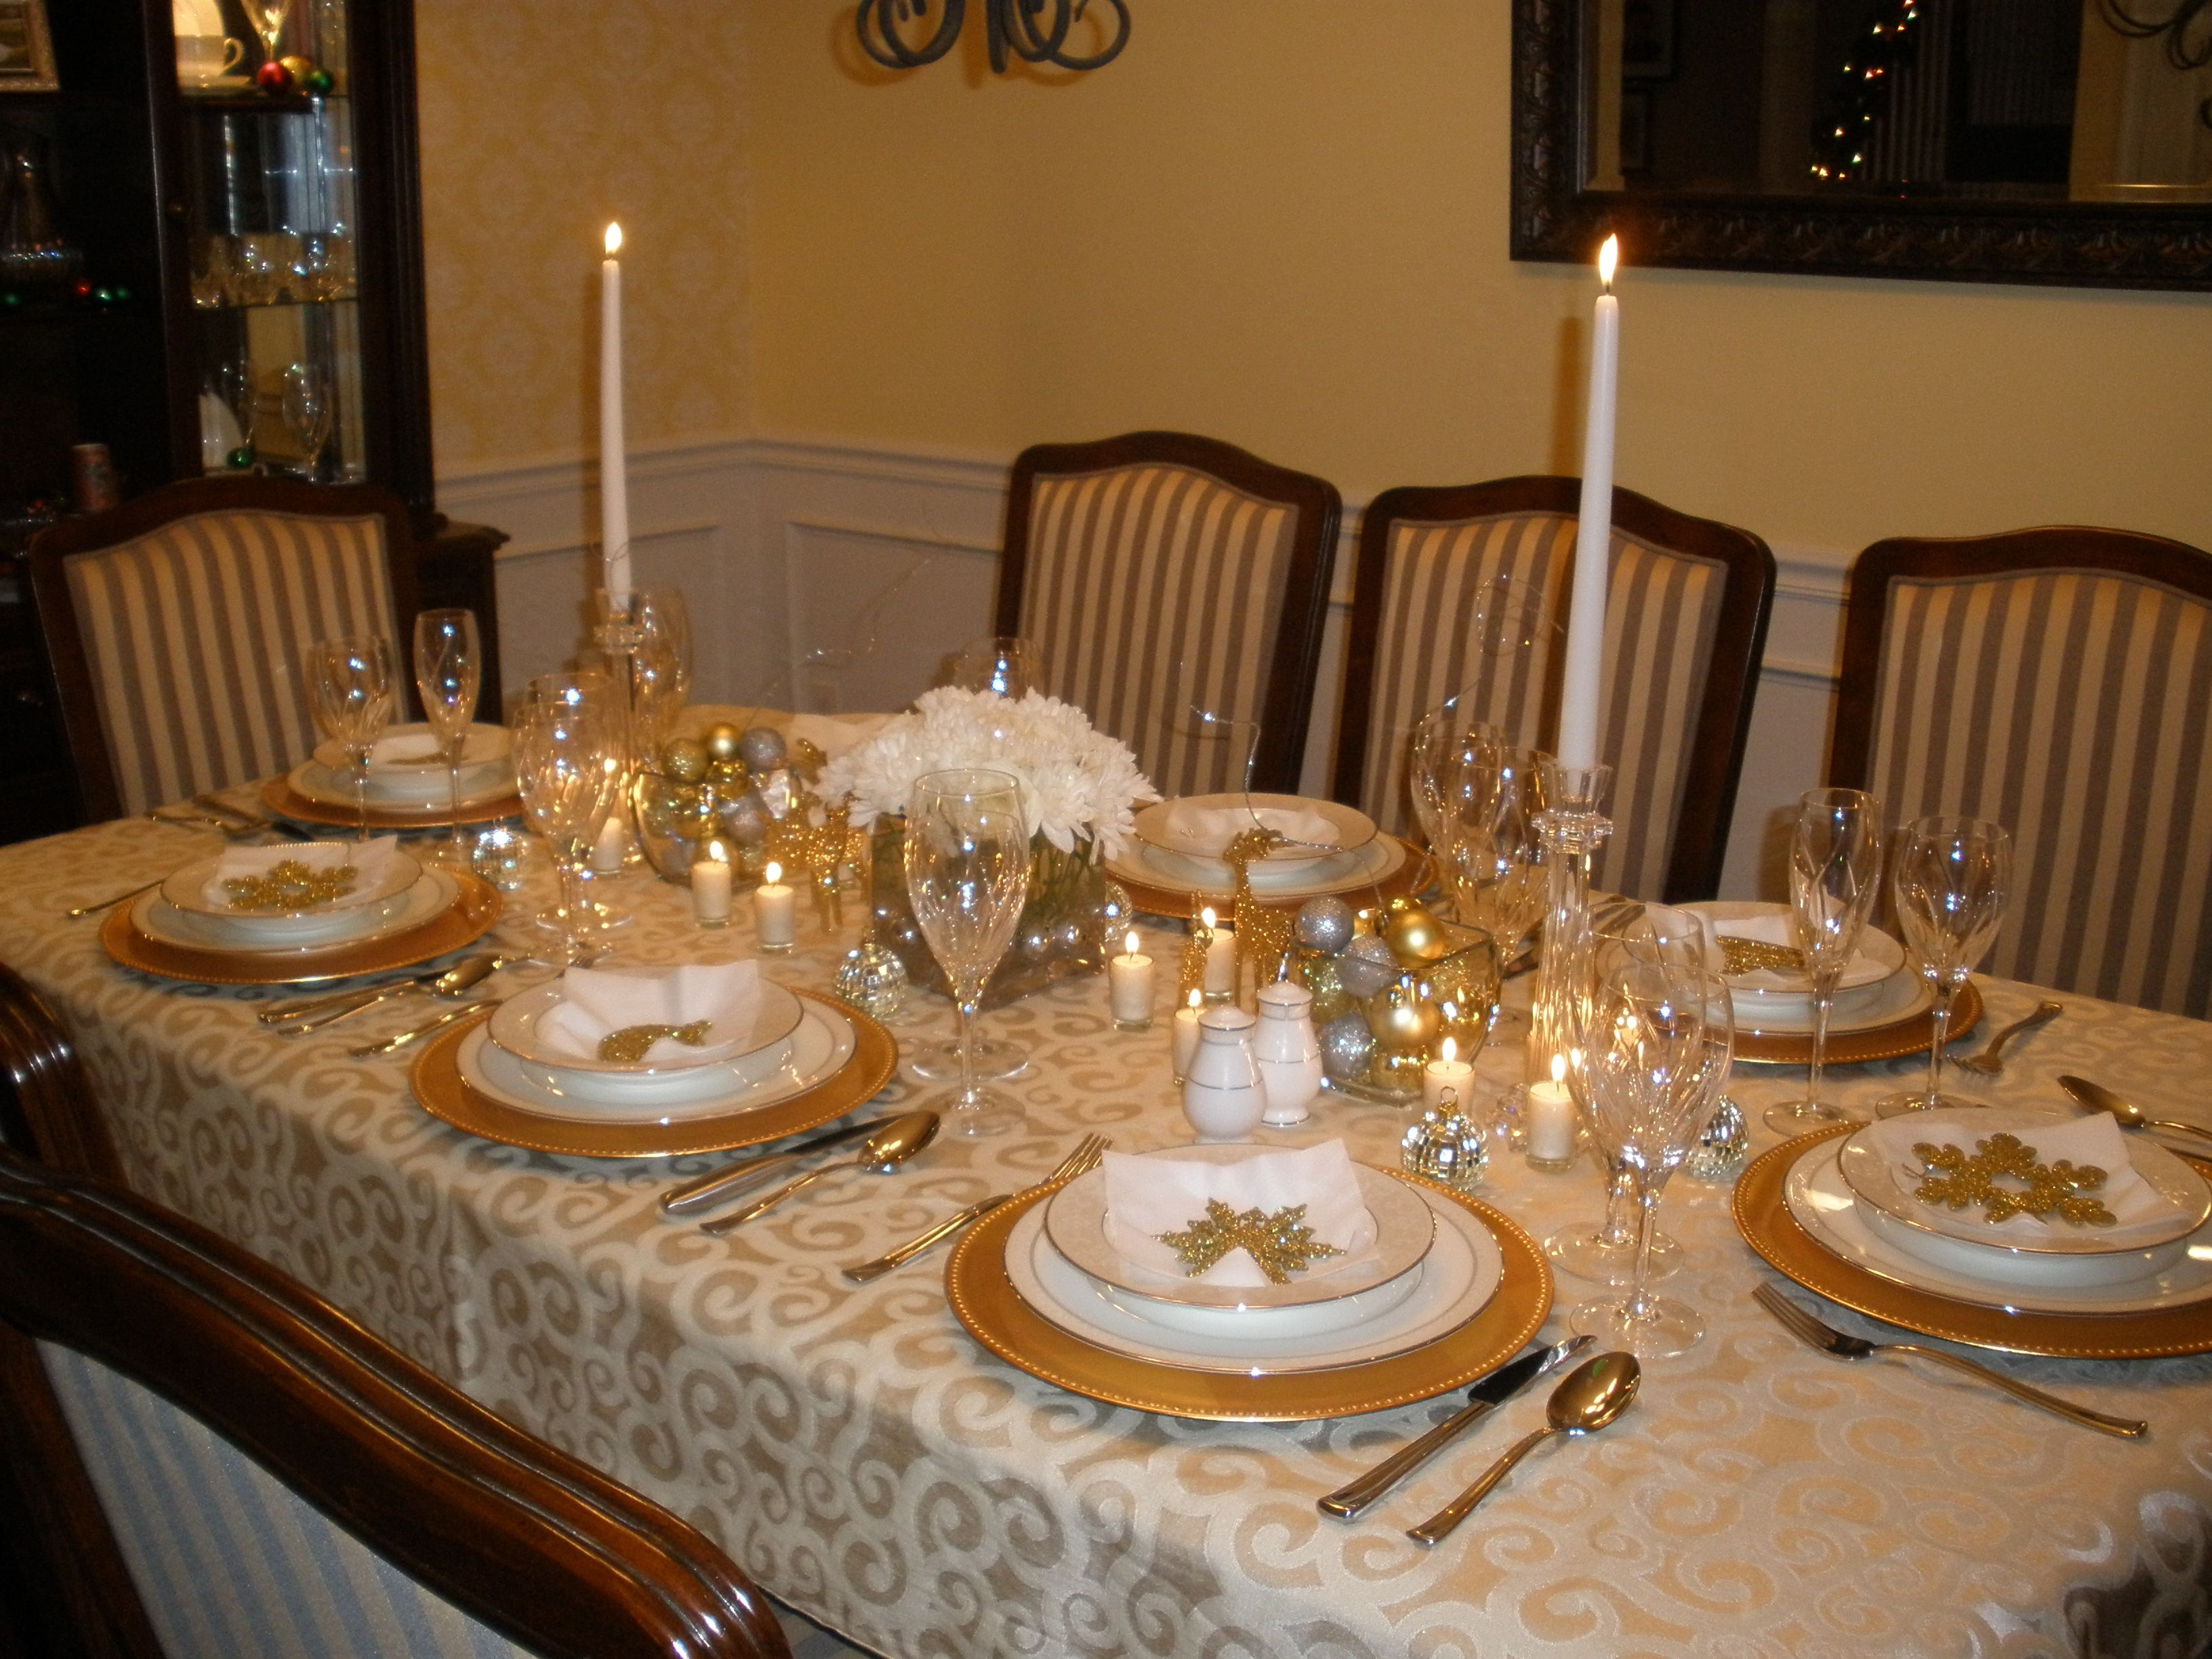 Gold and Silver Christmas table setting : table setting for christmas - pezcame.com